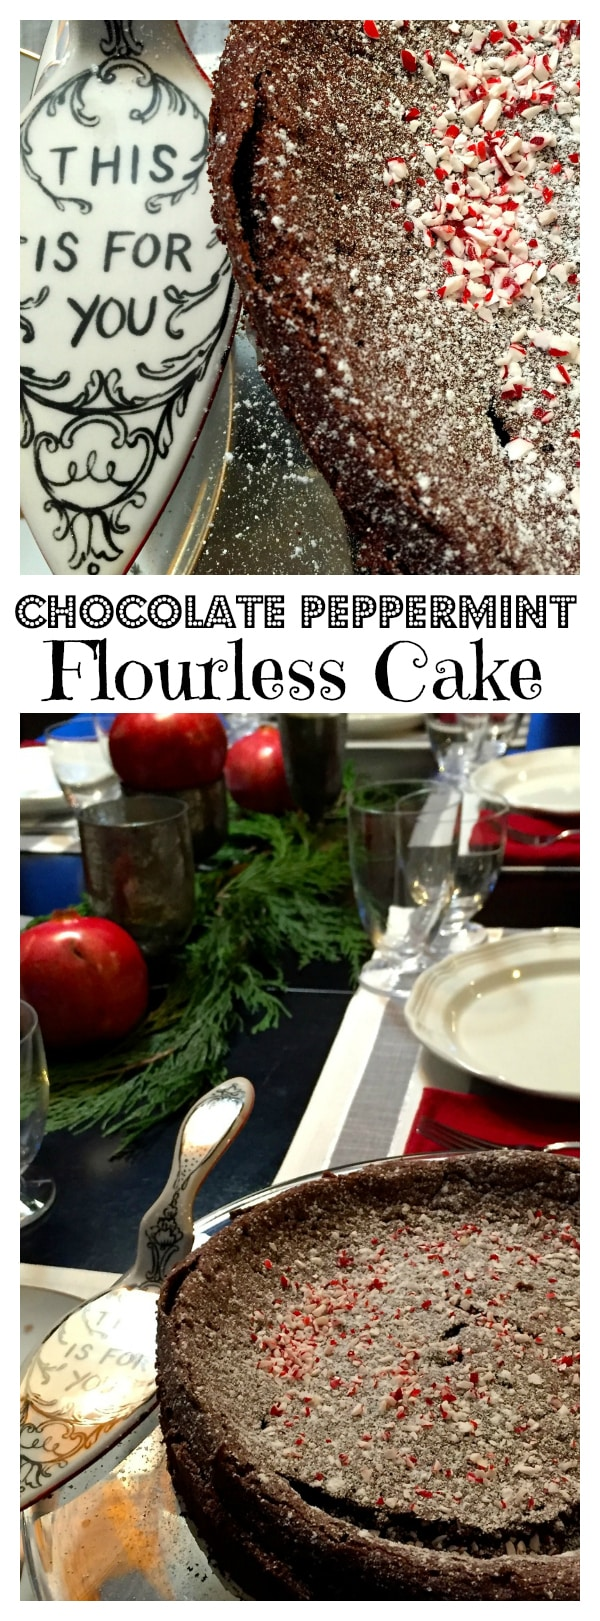 Chocolate Peppermint Flourless Cake for holiday entertaining